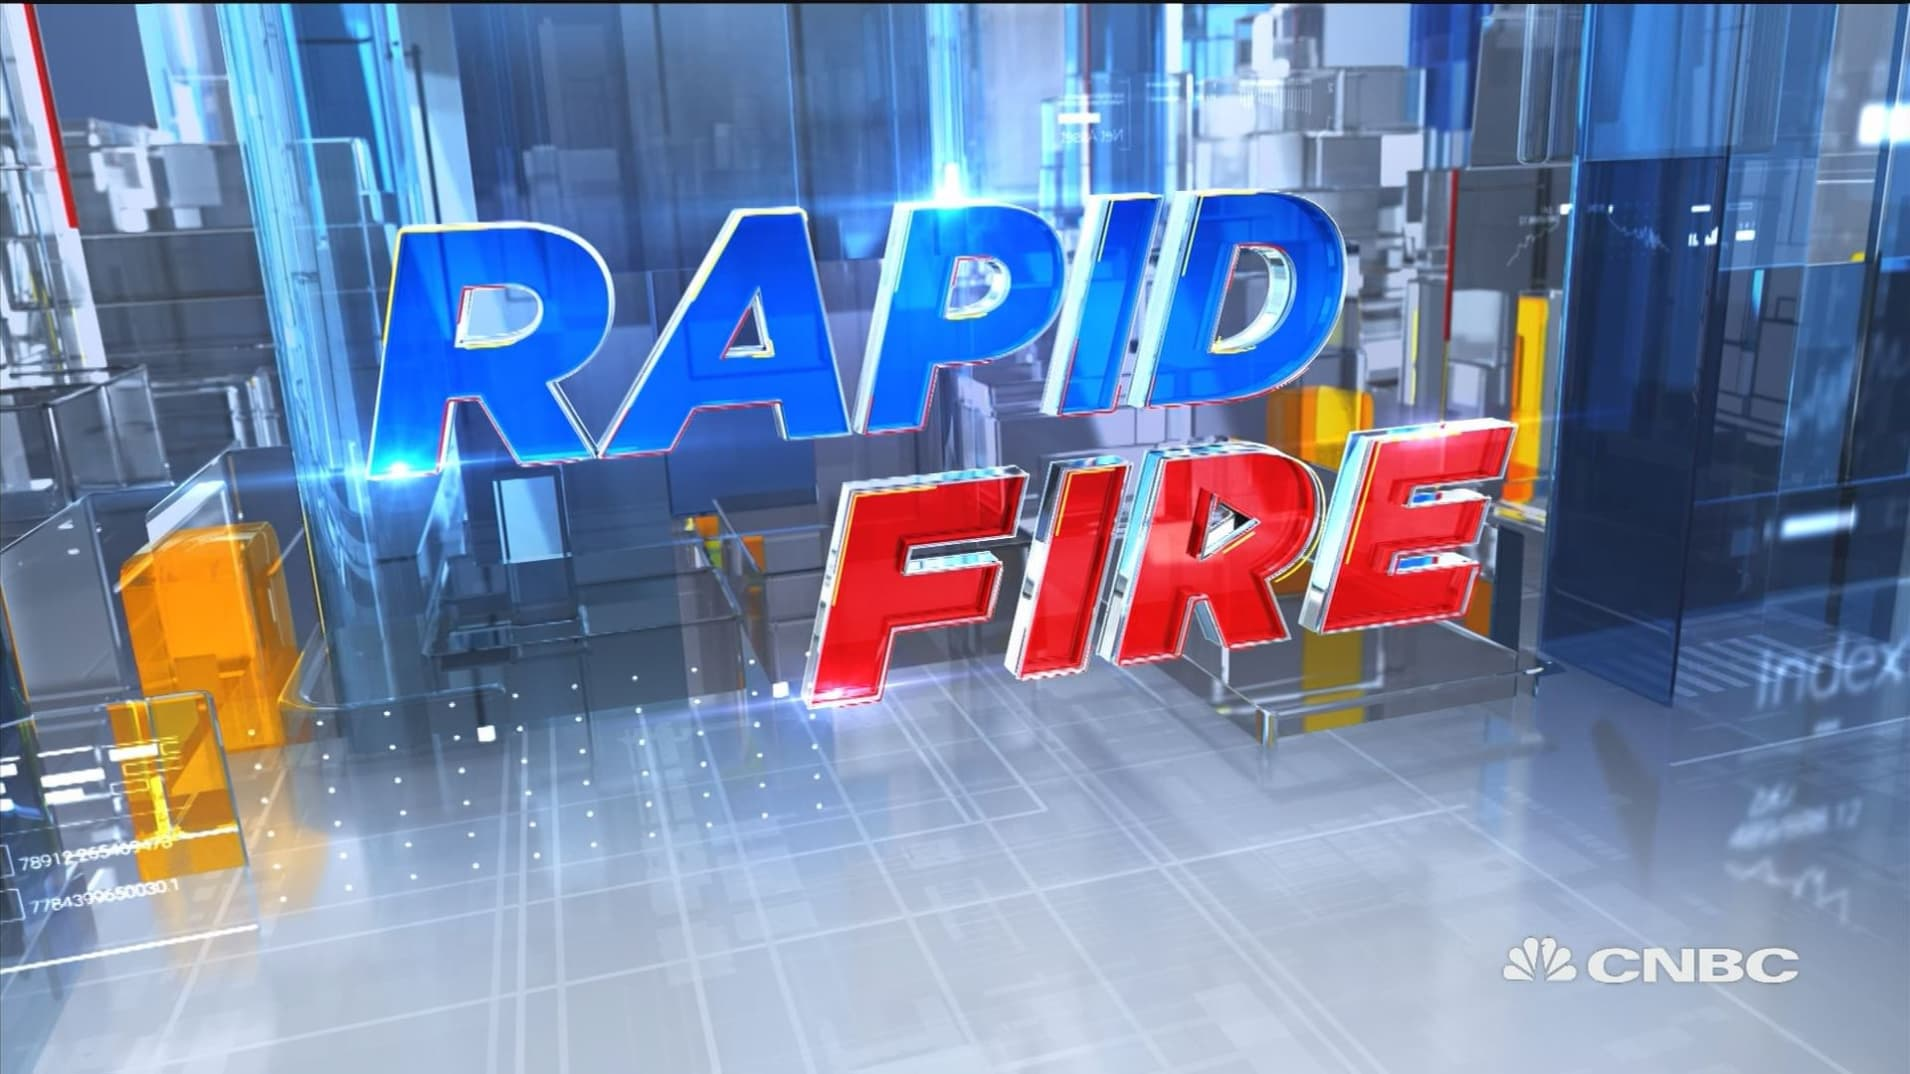 Pinterest's IPO, IBM melts down & Godiva's chocolate cafes, all in today's Rapid Fire